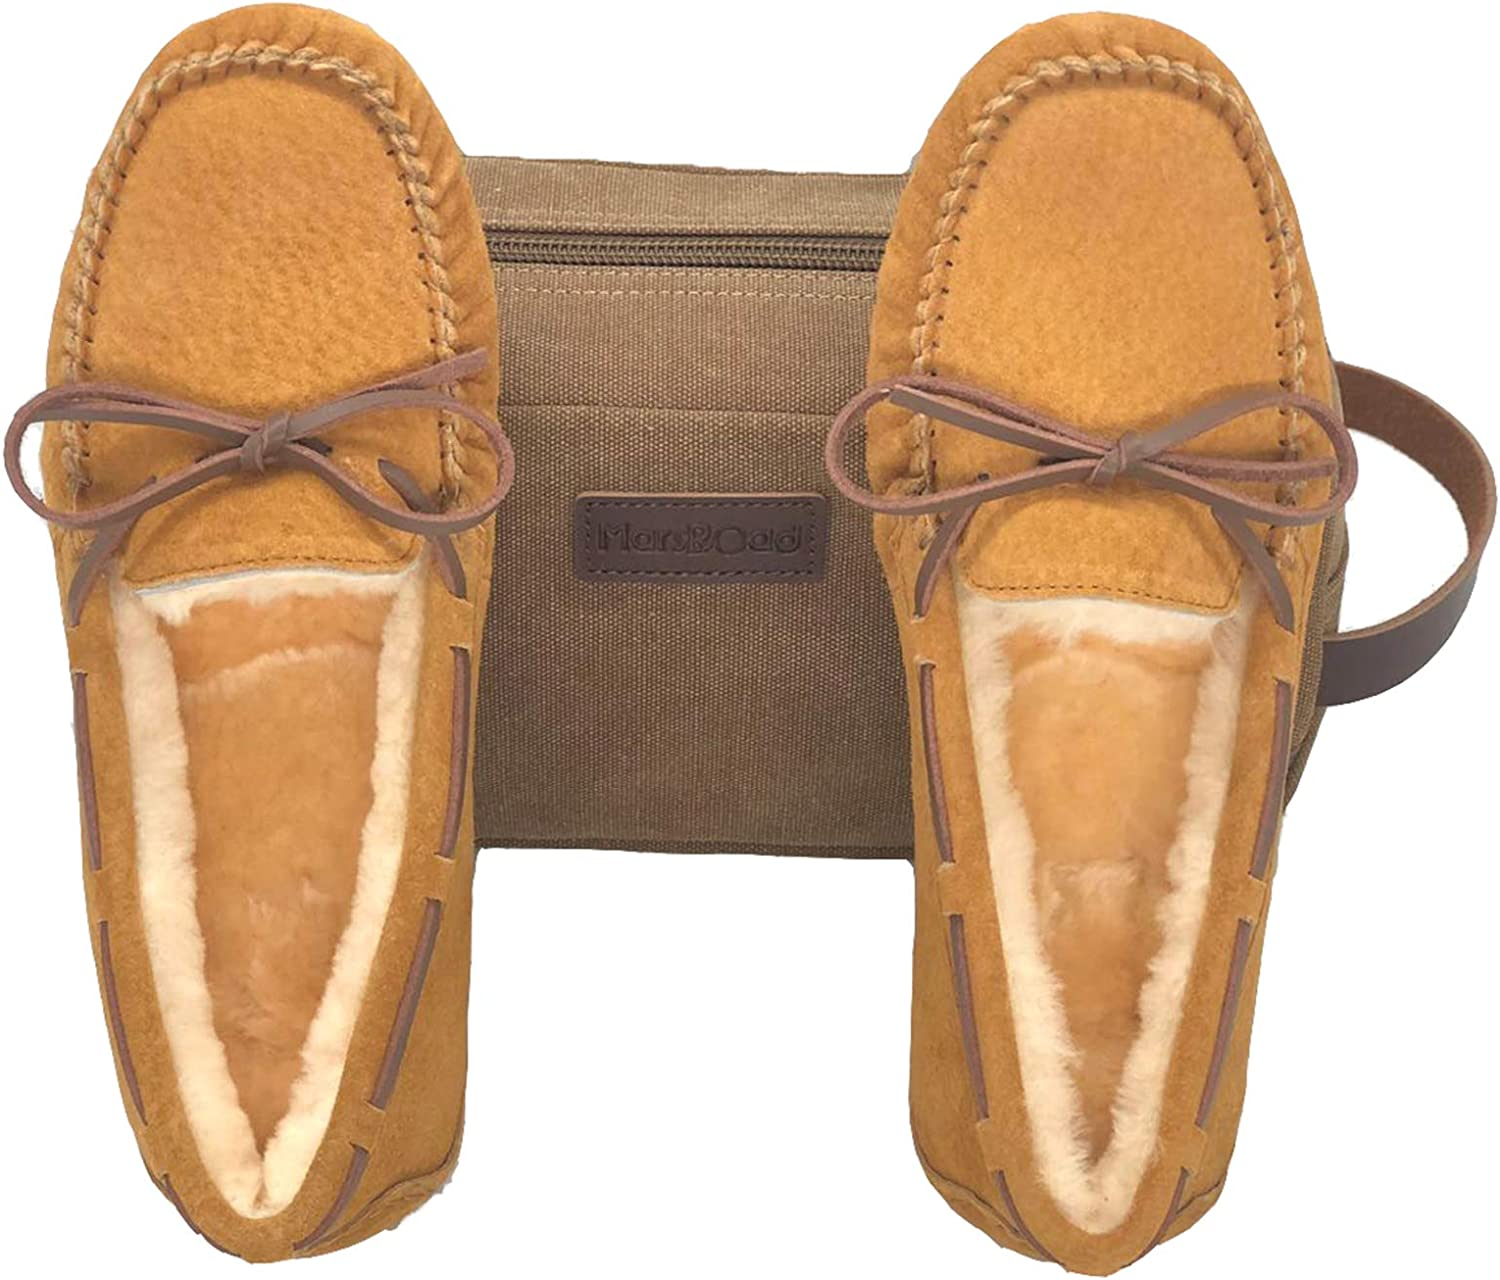 MarsRoad Woman's Sheepskin Moccasin, Aussie Shearling Victoria Moc Slippers with Tie and Wool Lining, Packed in a Toiletry Bag